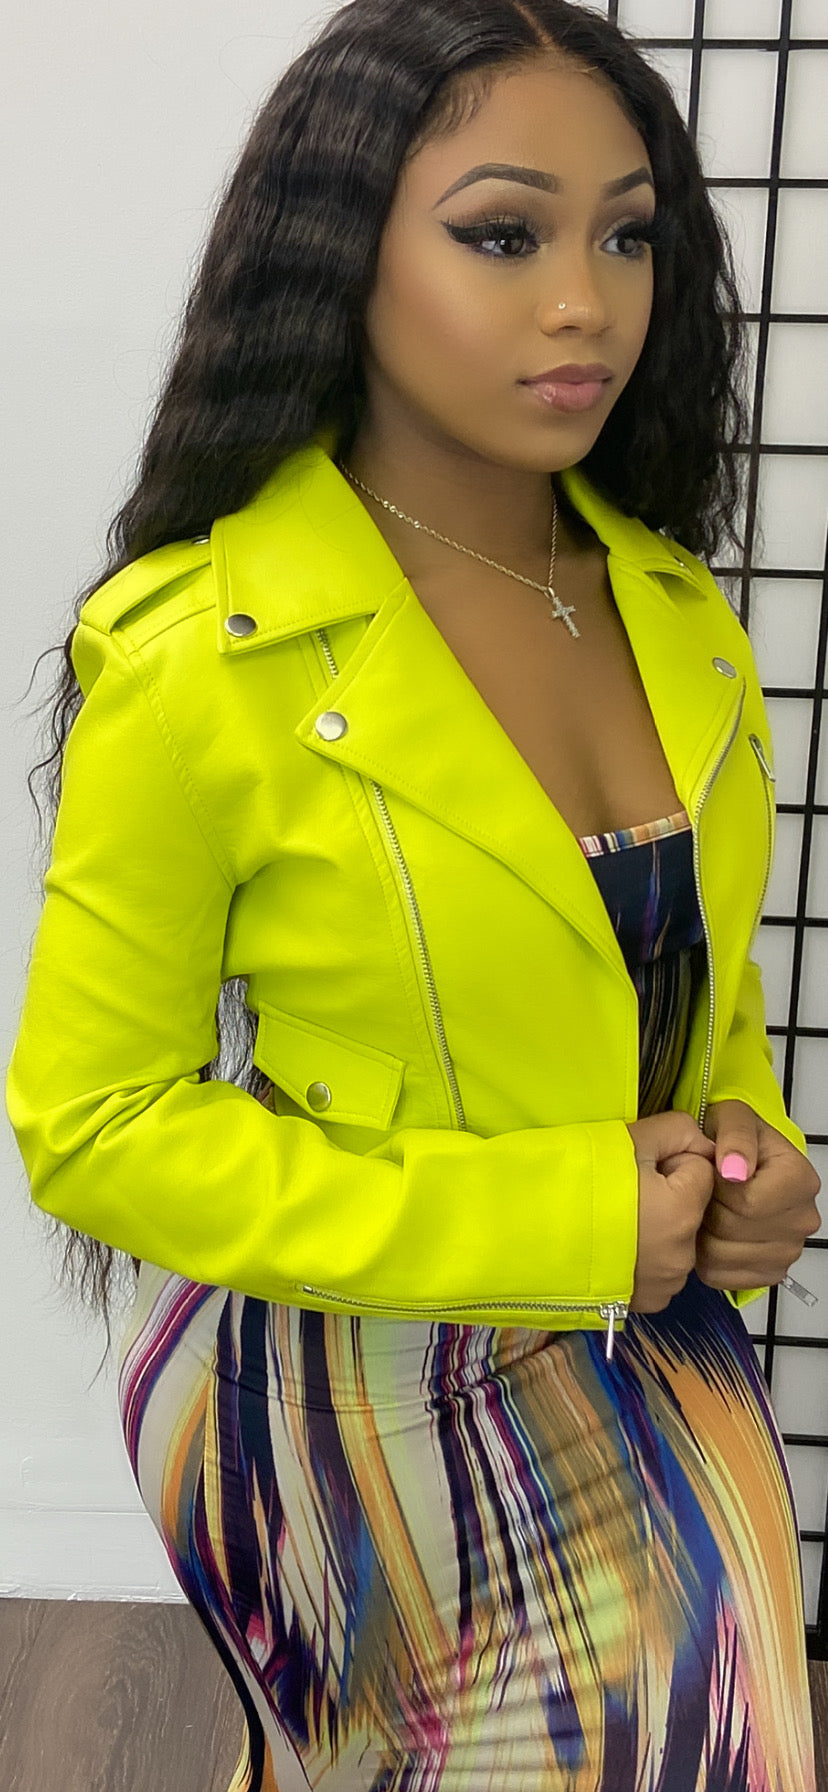 LIME AWAY MOTTO CROP JACKET - Spice Boutique